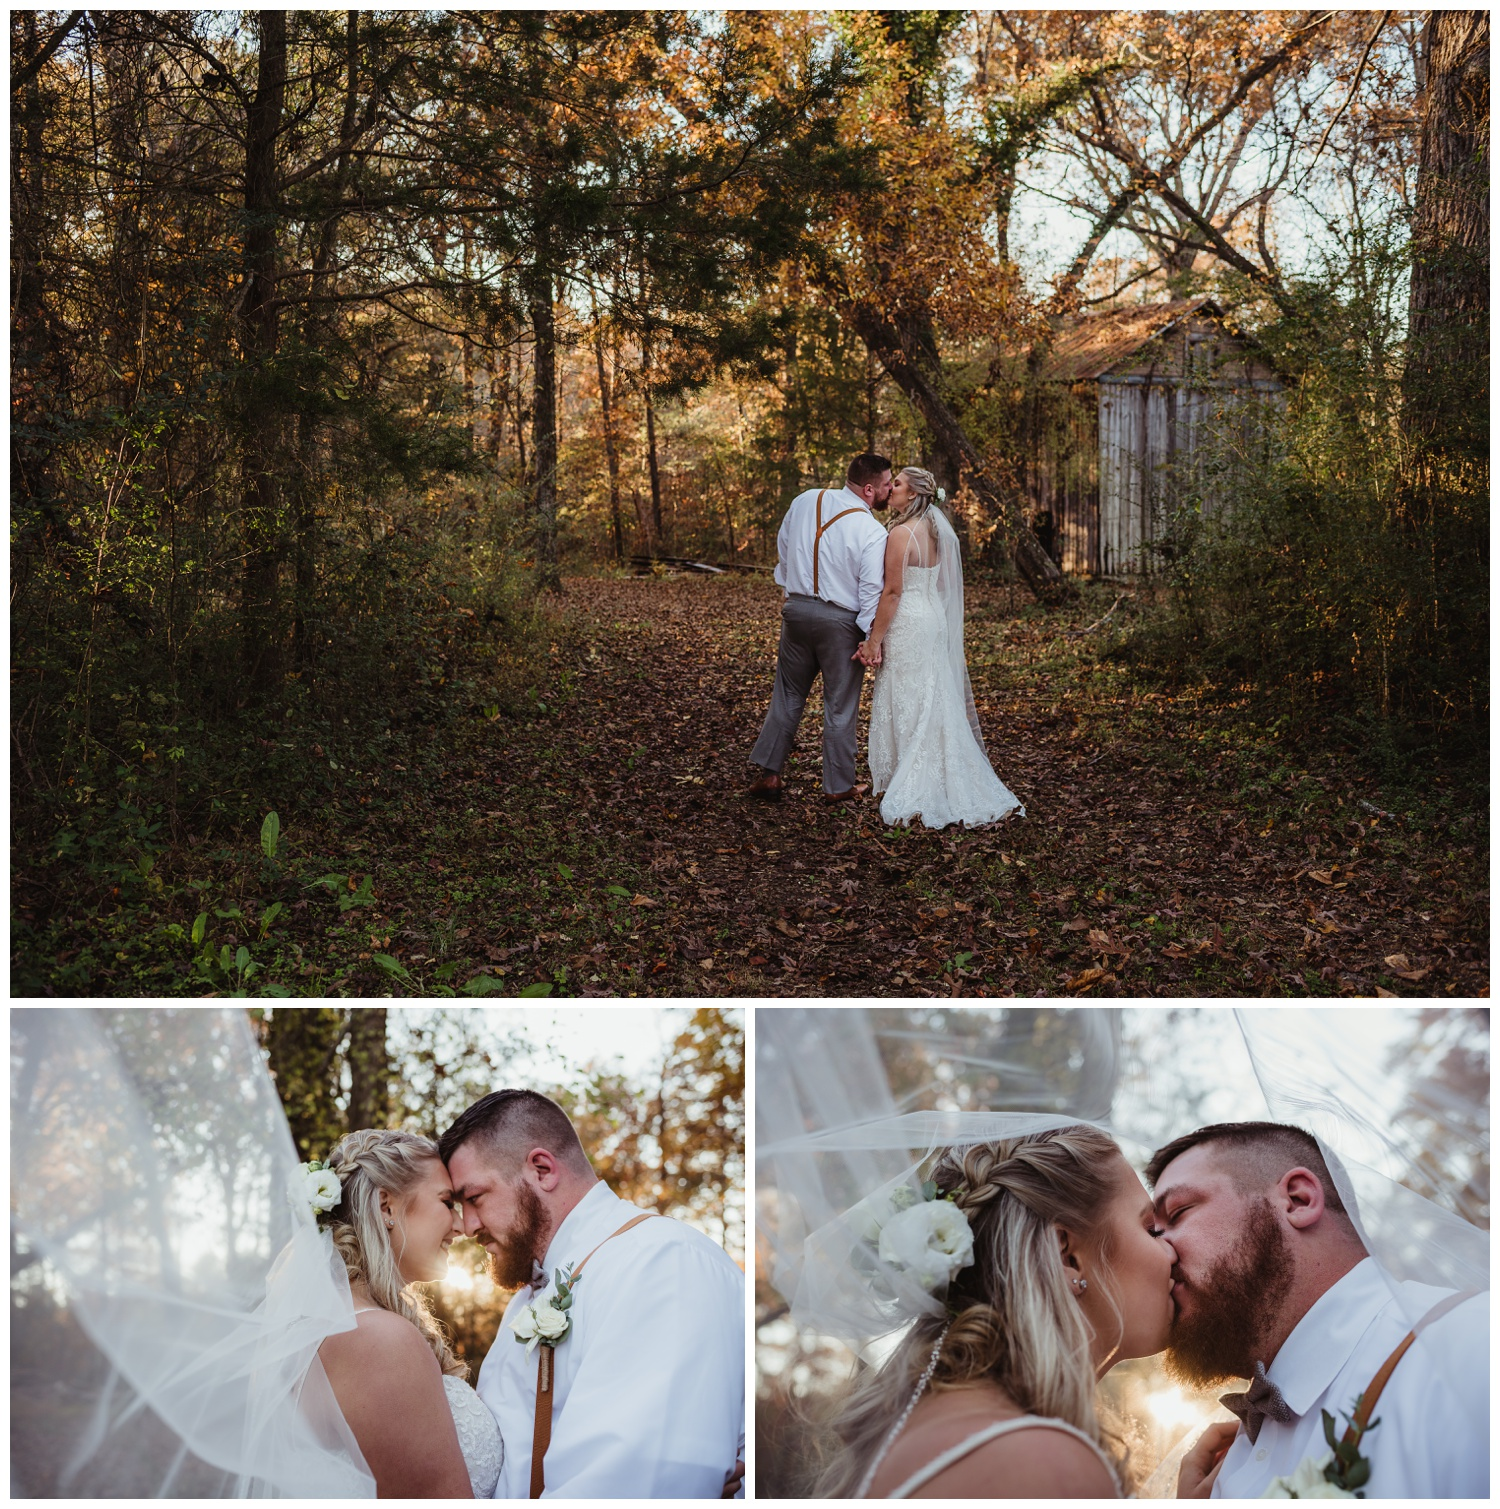 The bride and groom pose in the woods under her veil for wedding pictures at The Warren Estate, images by Rose Trail Images of Rolesville, NC.